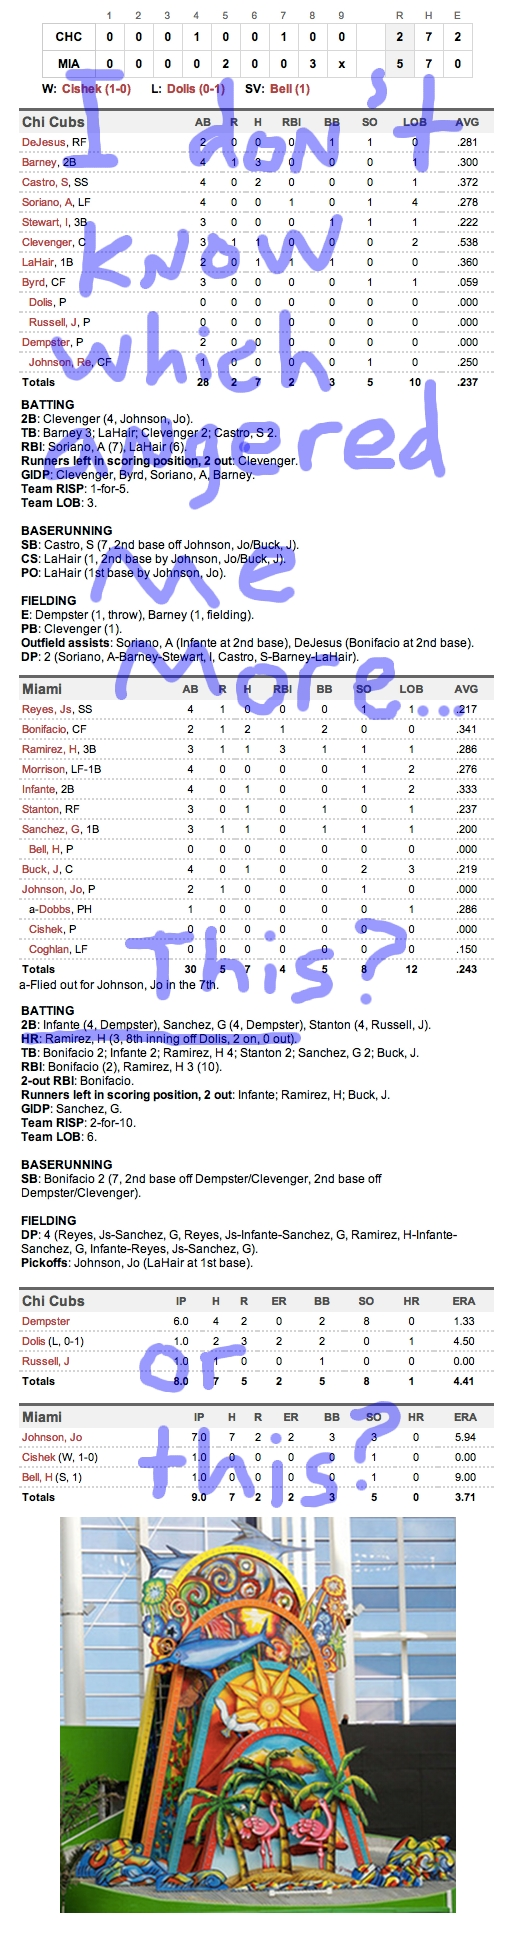 Enhanced Box Score: Cubs 2, Marlins 5 – April 17, 2012